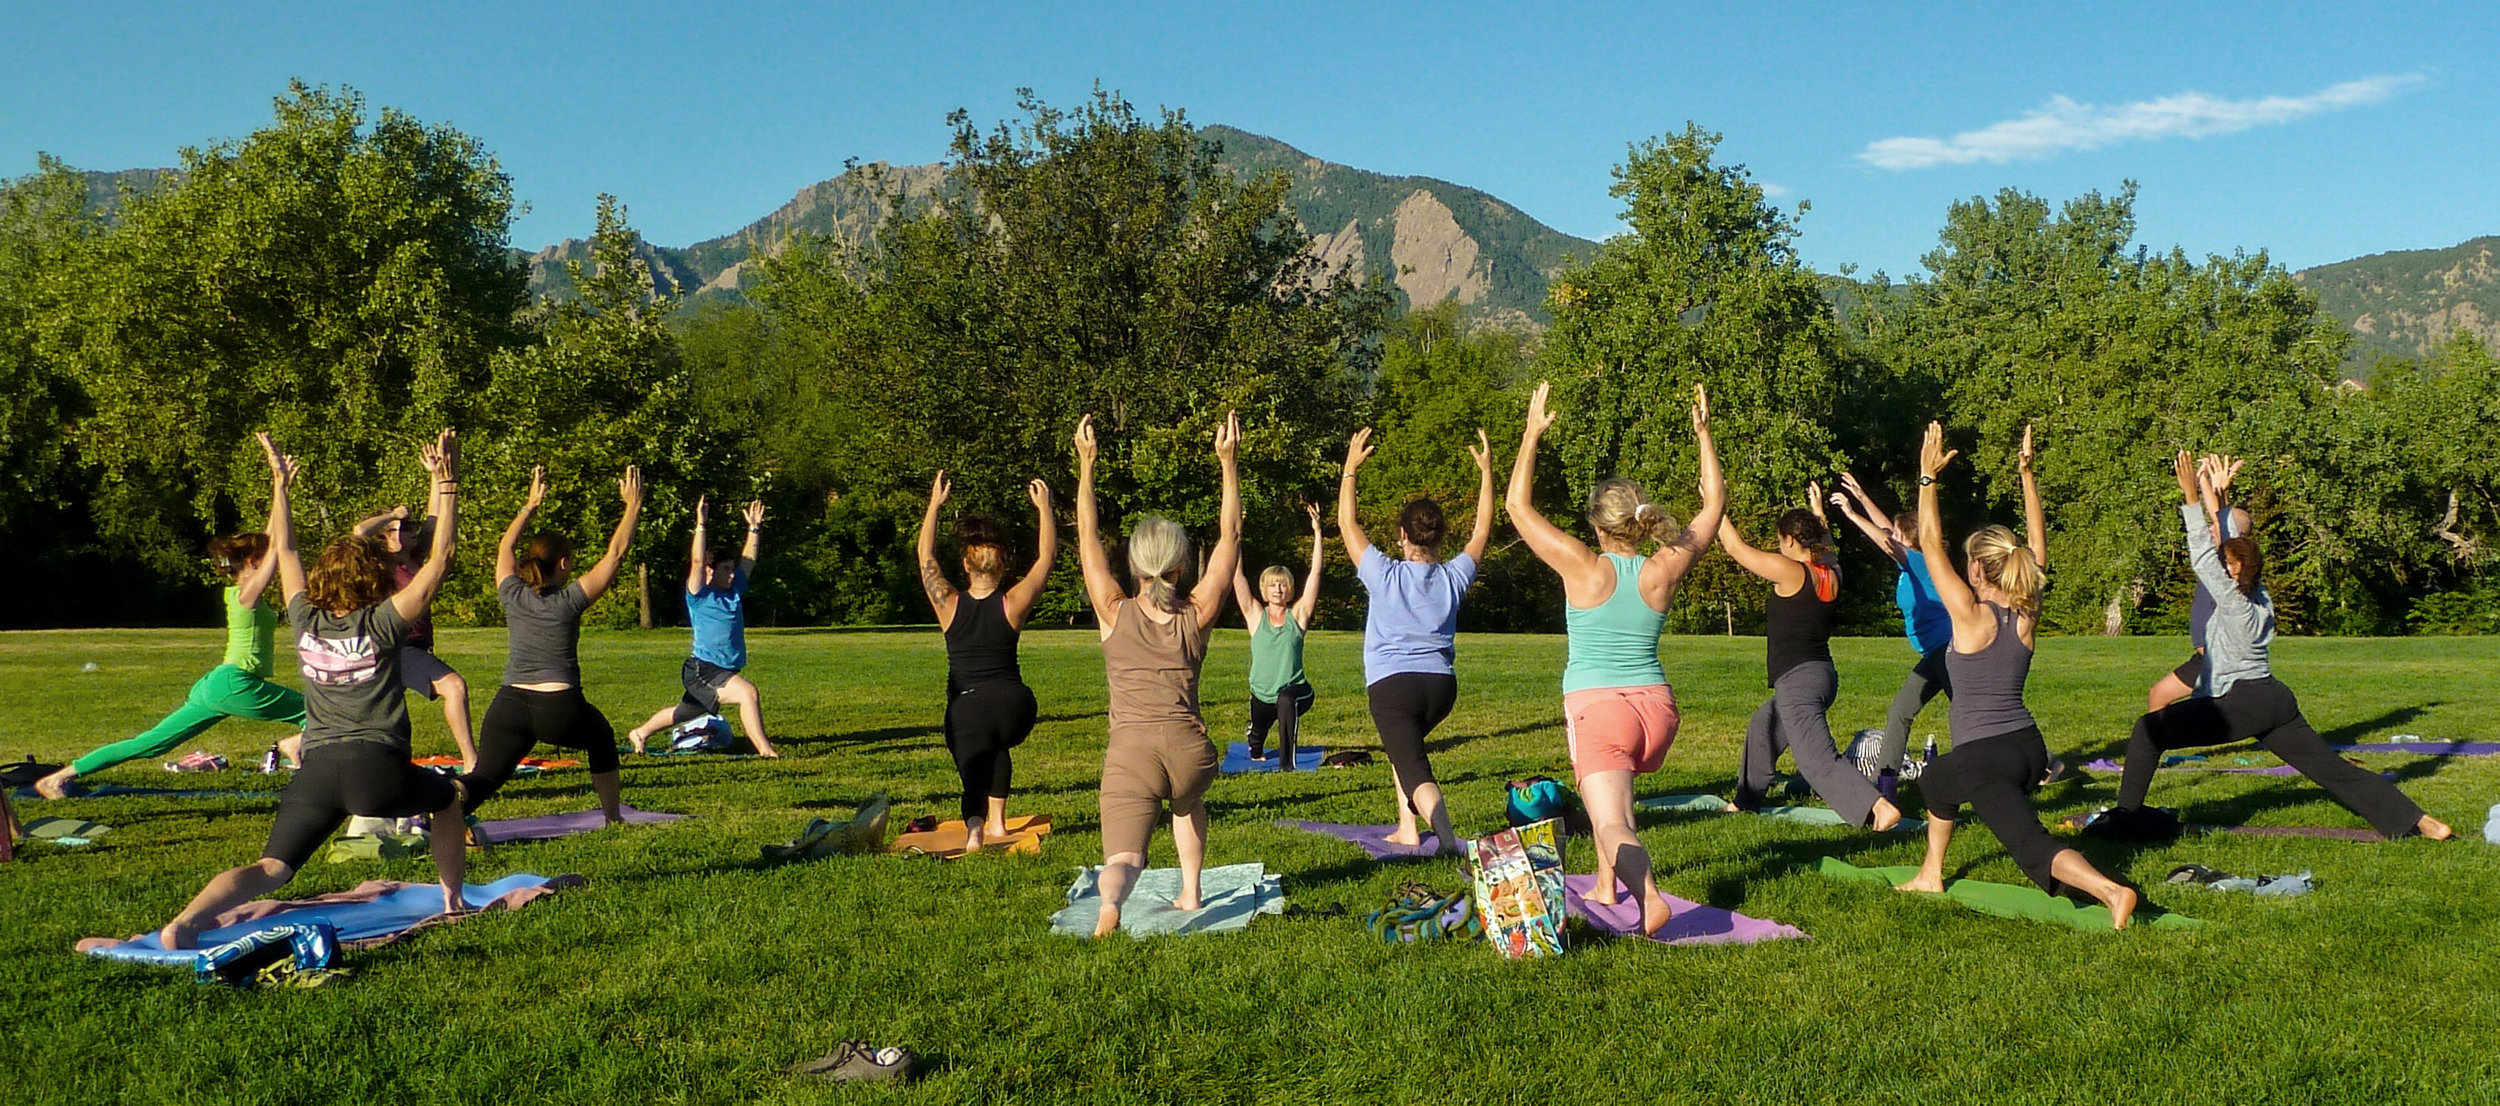 PowerFit Yoga - conditioning-based outdoor yoga held at Chautauqua Park in Boulder